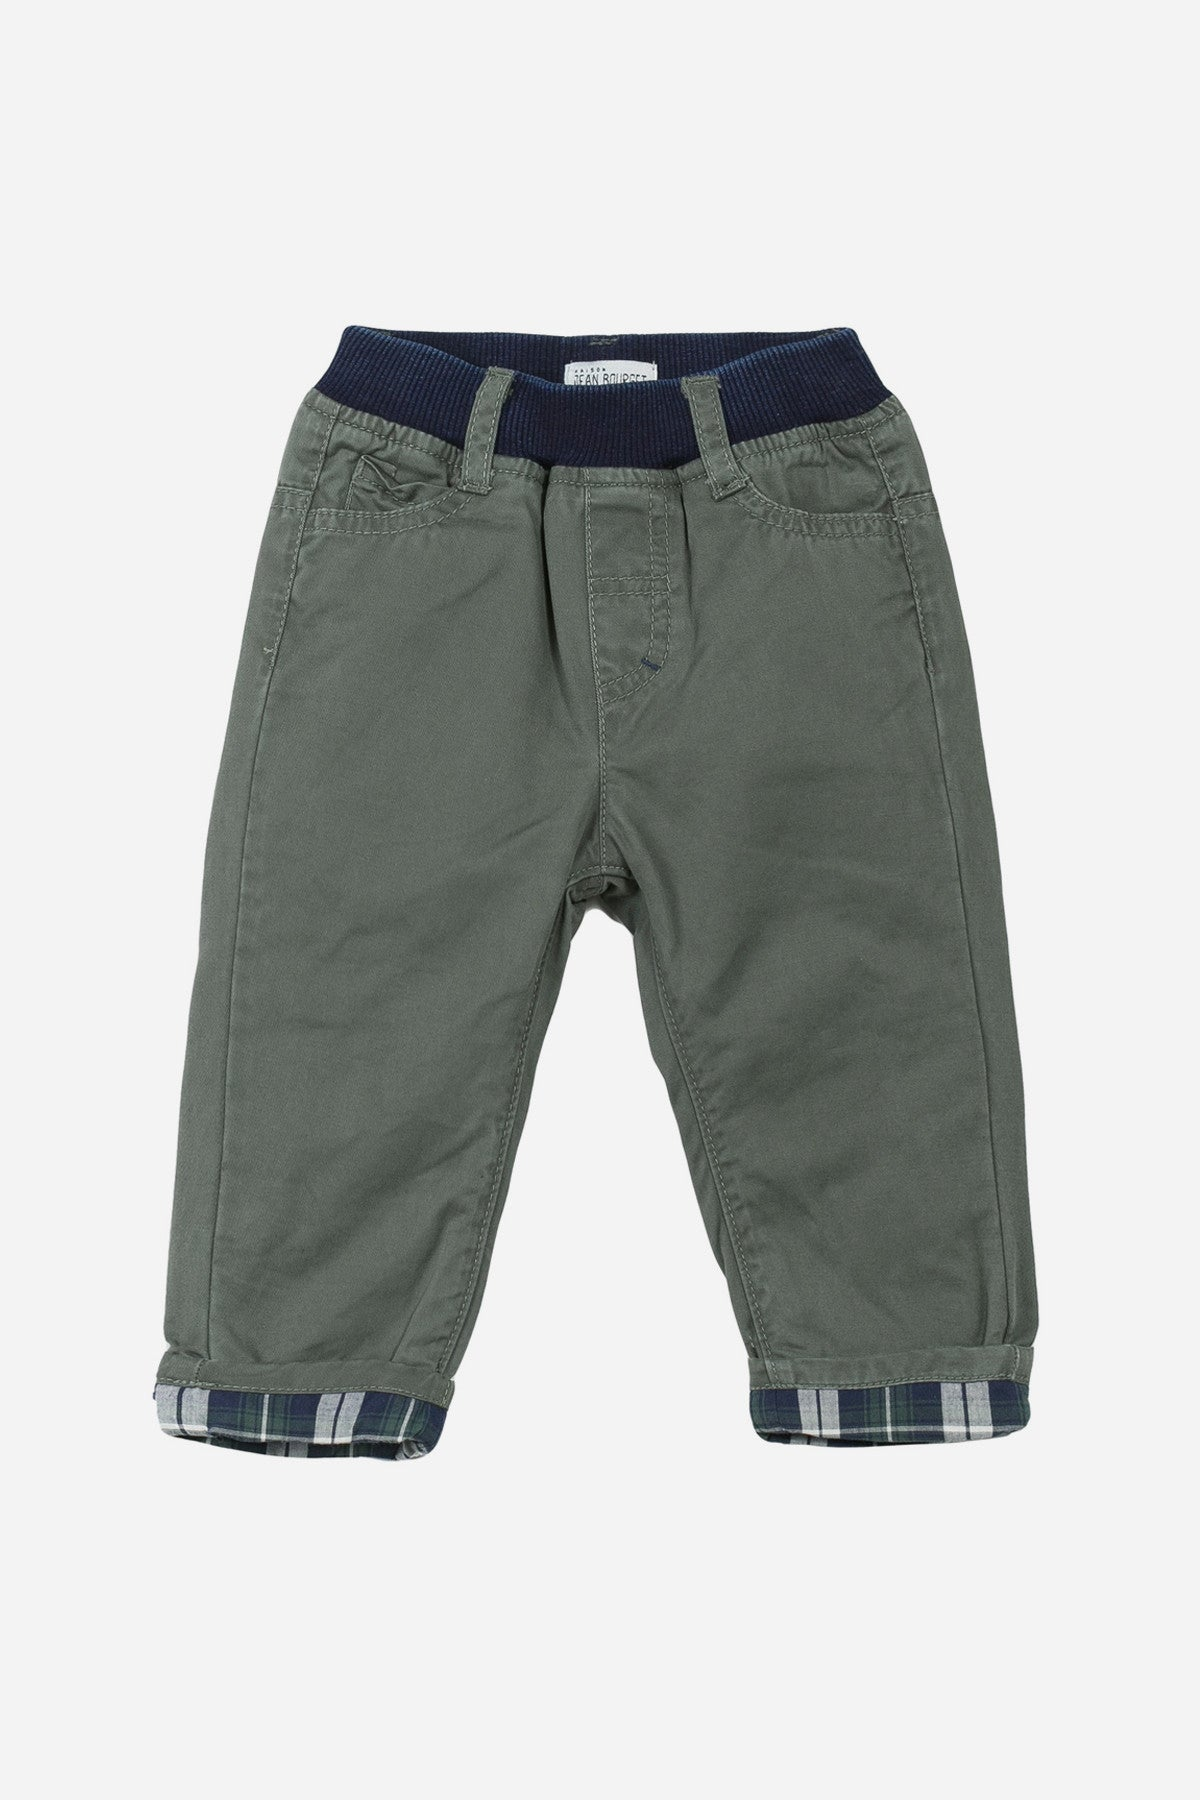 Jean Bourget Baby Boy Chinos (Size 12M left)